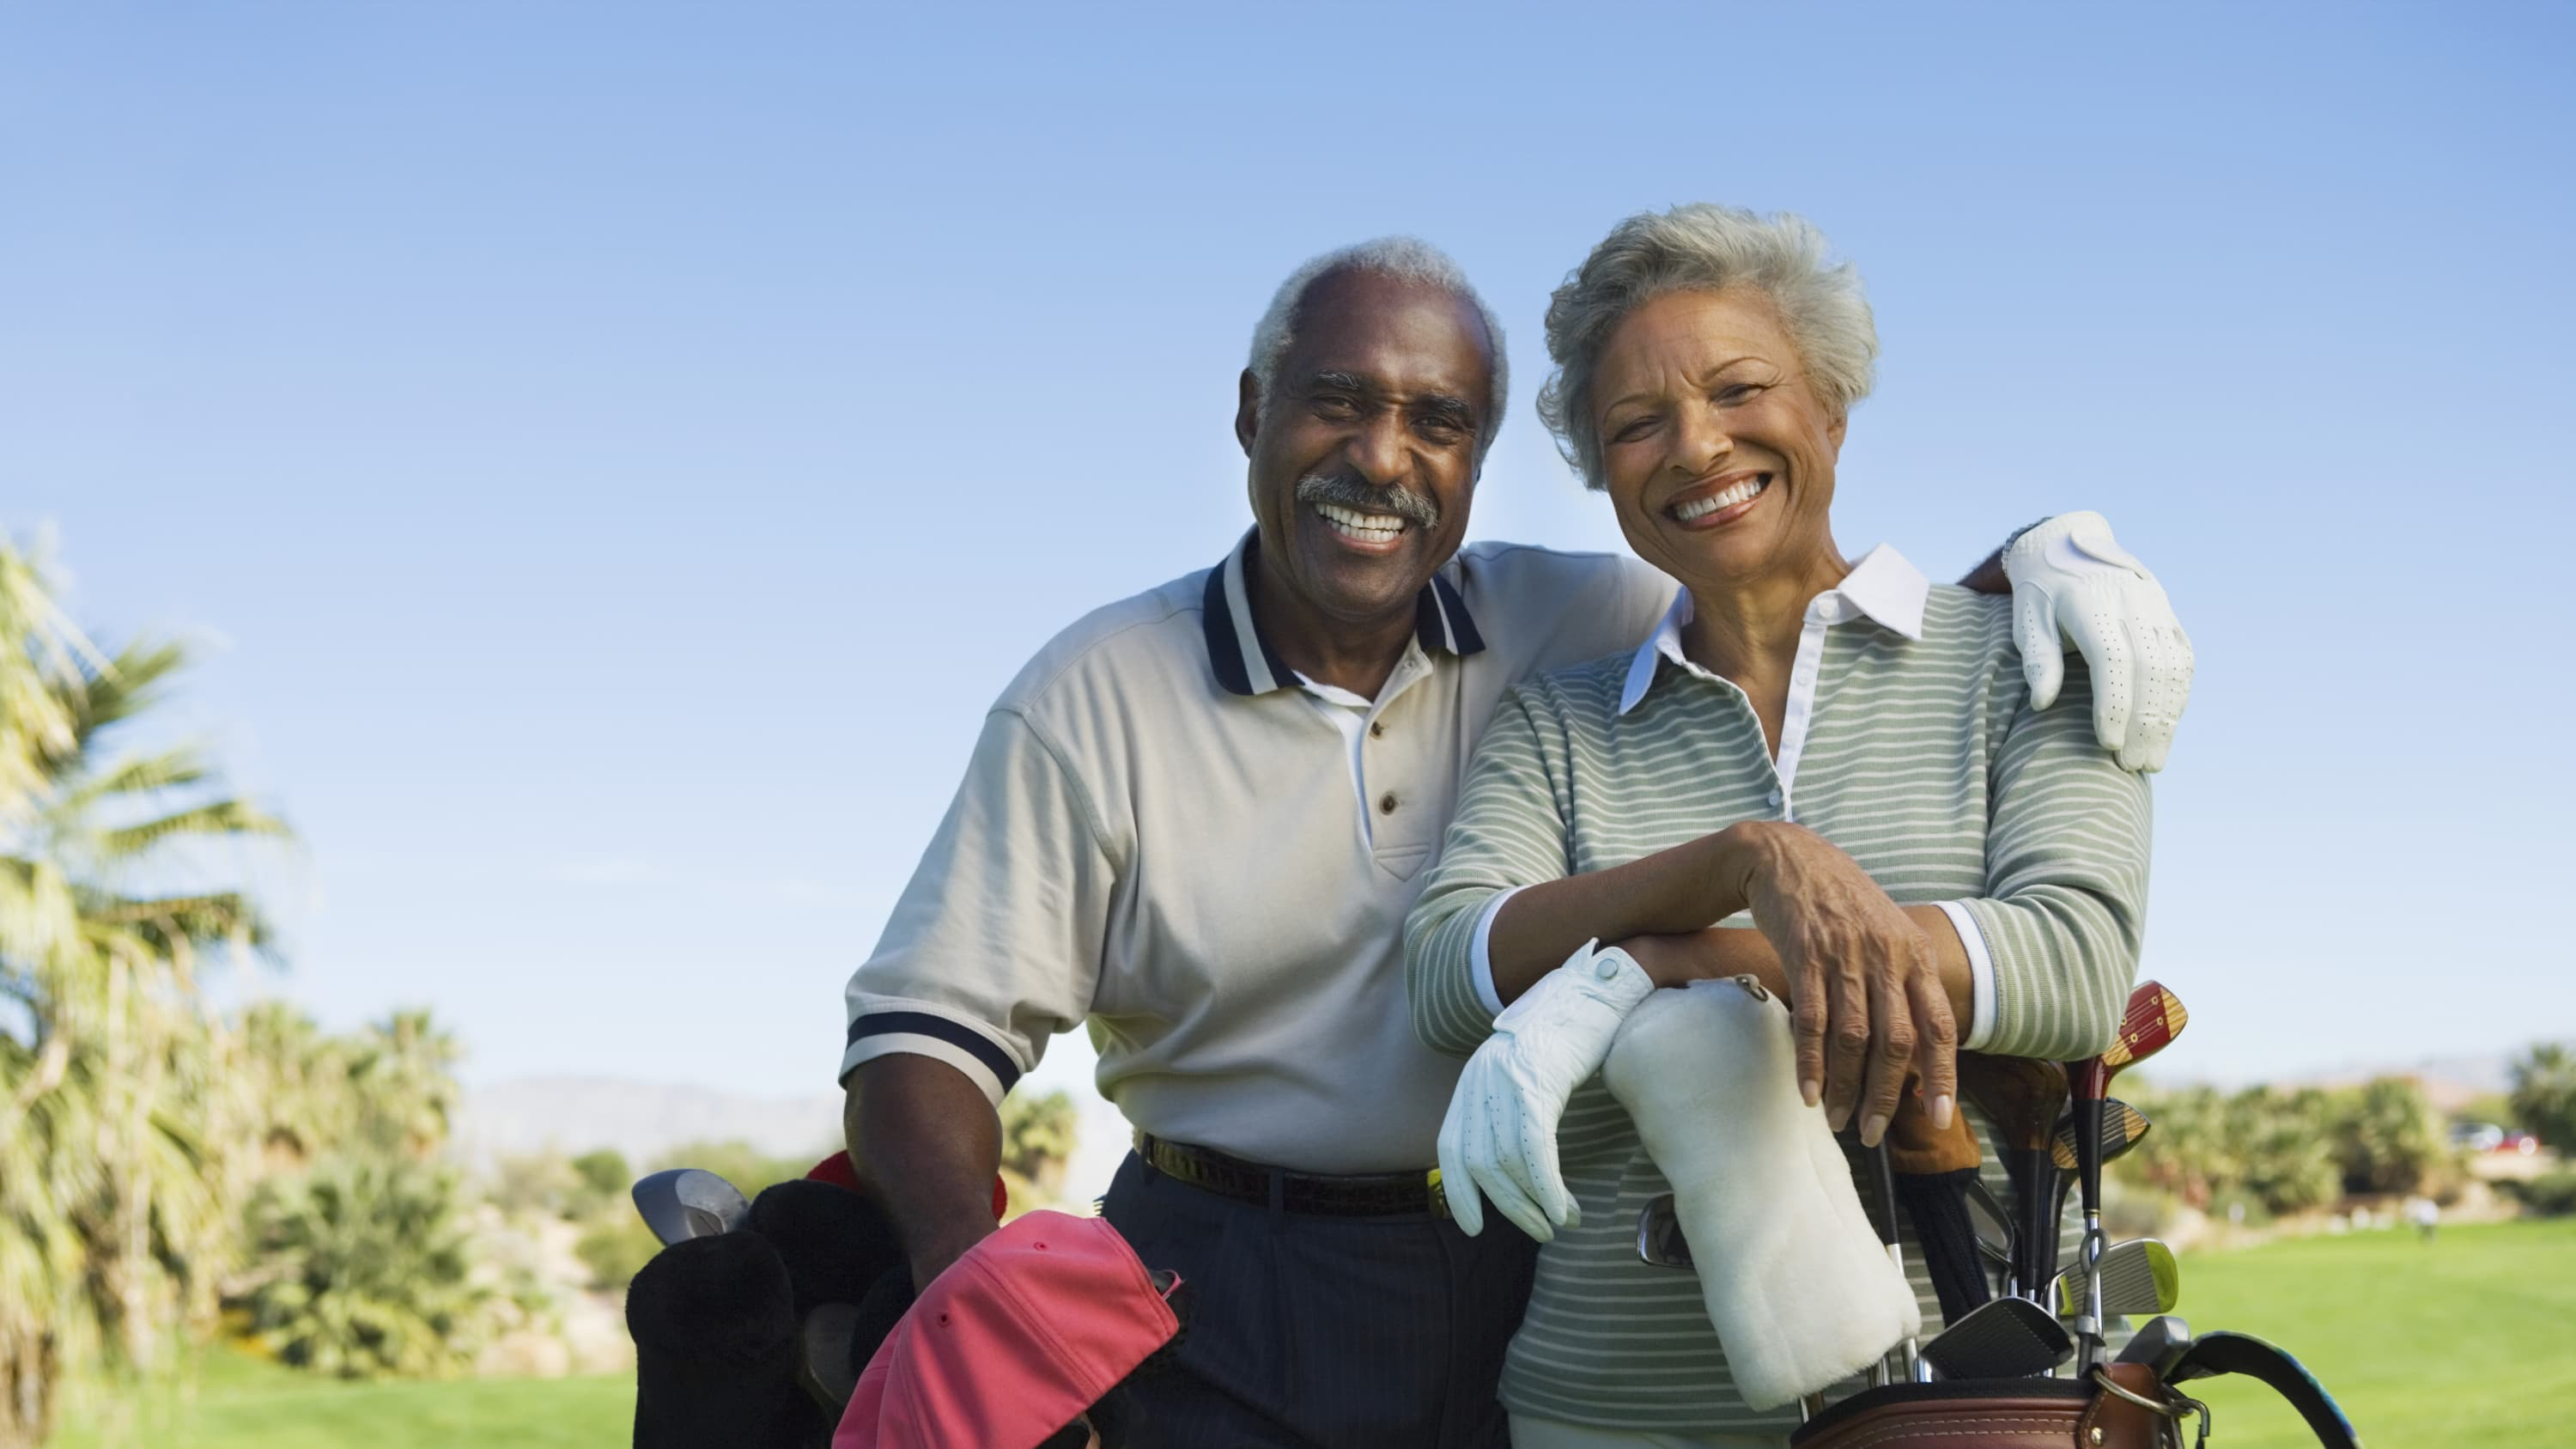 A couple playing golf, possibly after aortic aneurysm surgery